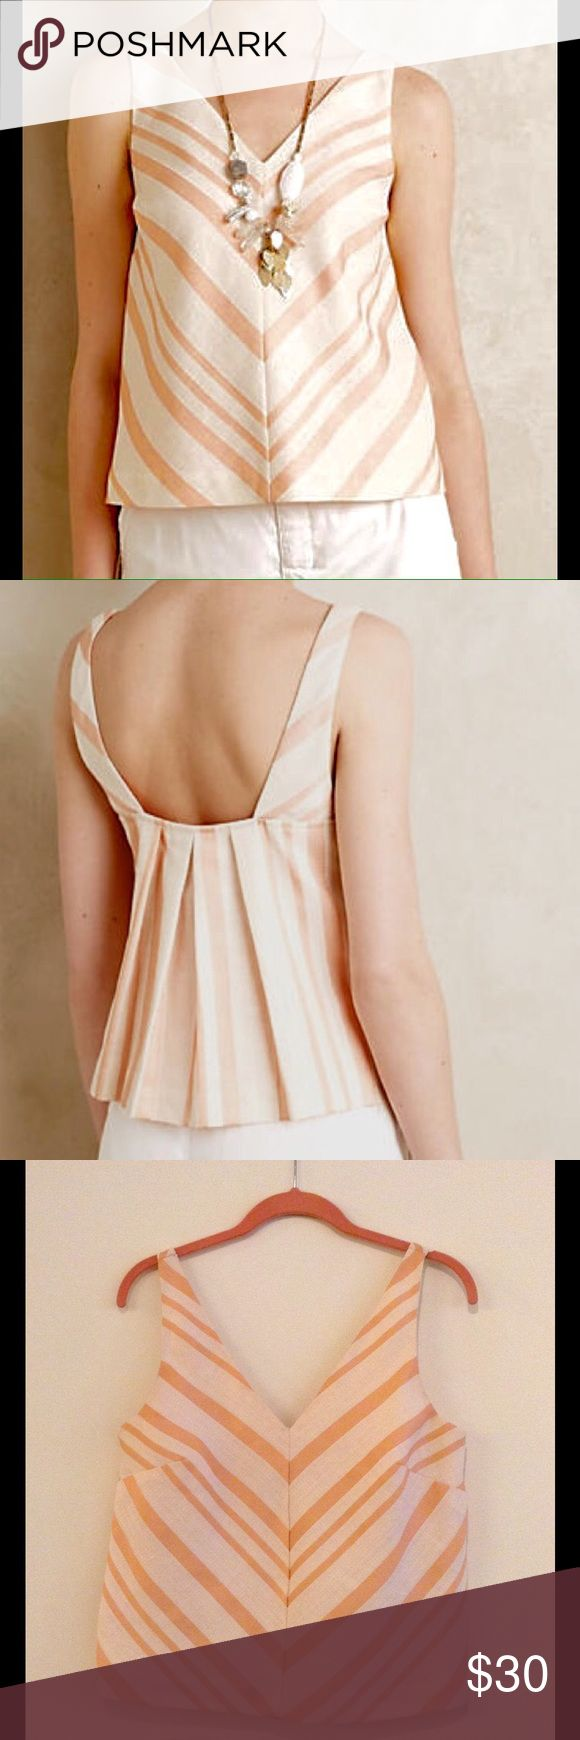 Anthropologie HD in Paris Peach Chevron Top Anthropologie HD in Paris Peach and Cream Chevron Top - gently worn sleeveless top. Size: 8 US. 56% Cotton, 24% linen, 10% polyester blend. Fully lined with cream fabric. Perfect for spring. Anthropologie Tops Crop Tops